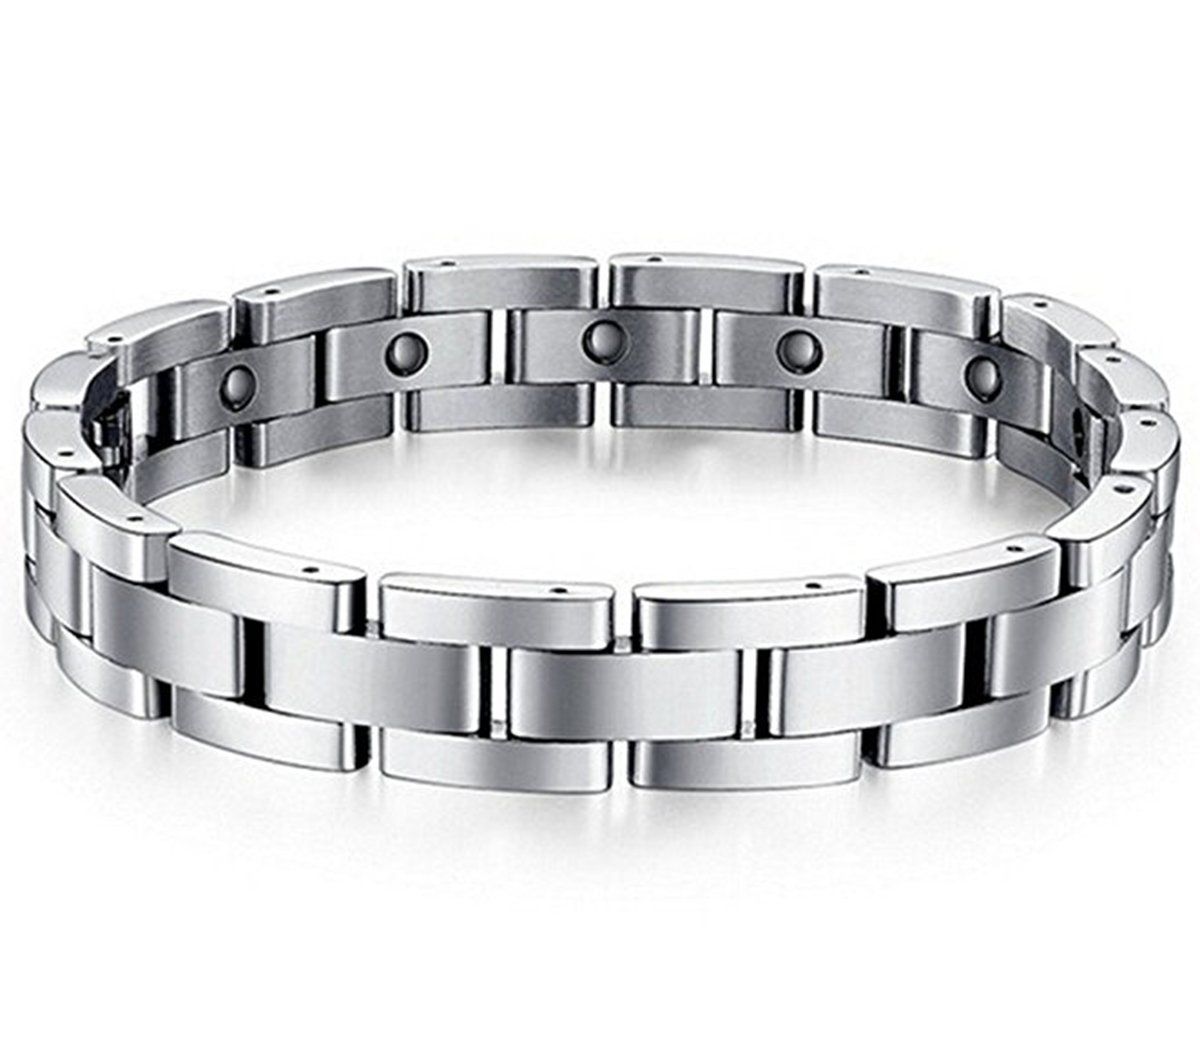 Feraco Men Sleek Magnetic Therapy Bracelet Pain Relief For Arthritis with Link Removal Tool,9 inch by Feraco (Image #2)